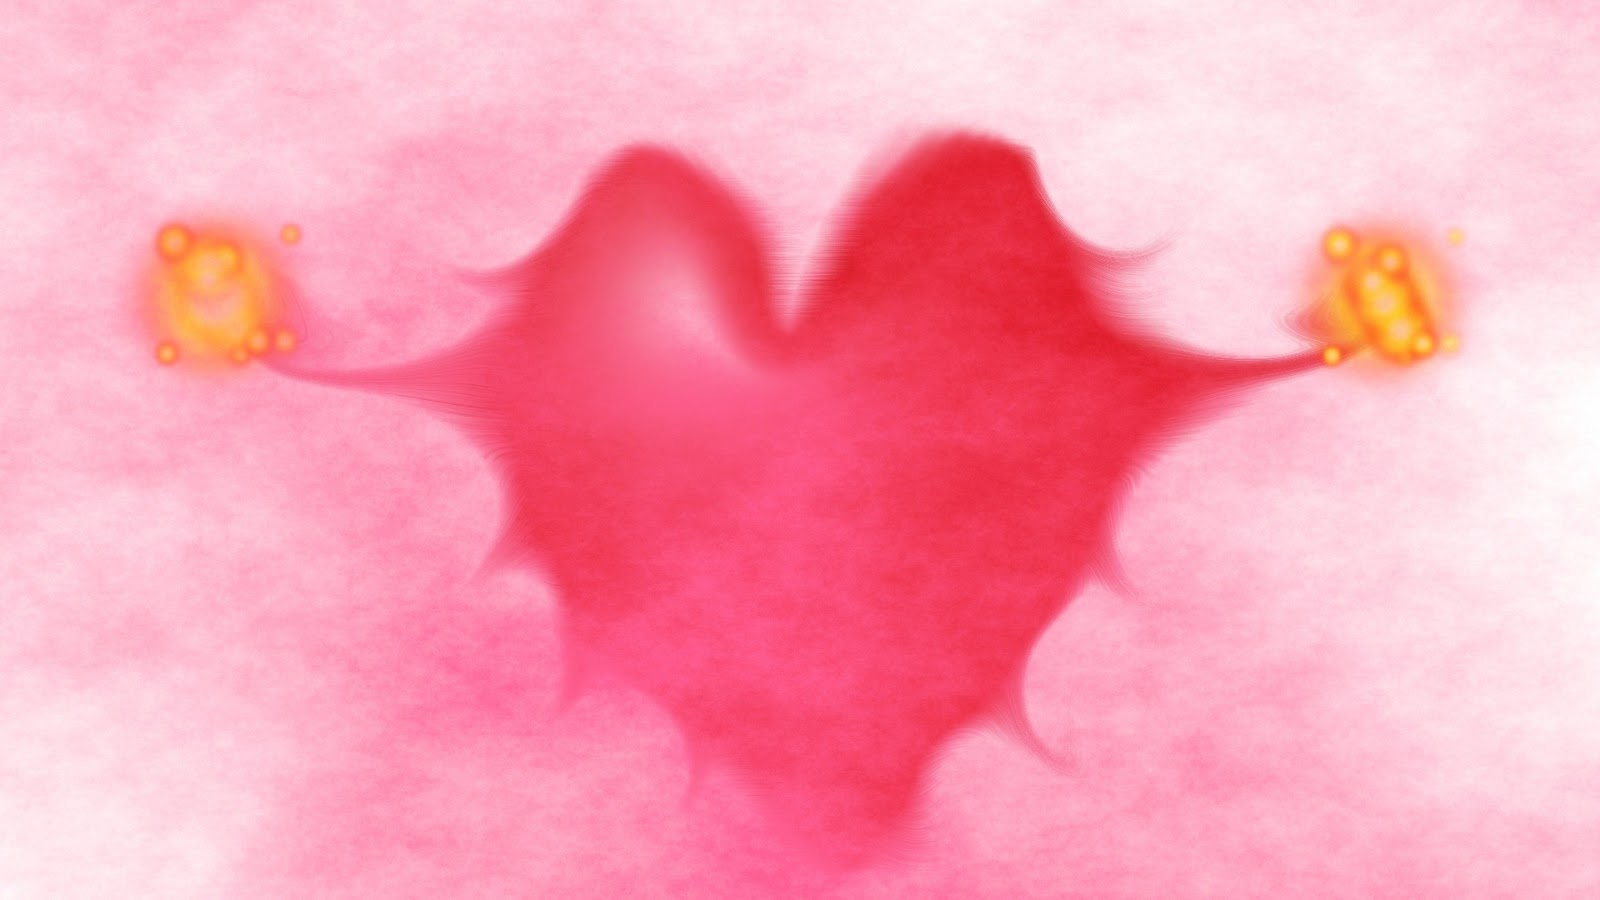 Love With Heart 1920x1080 Wallpaper